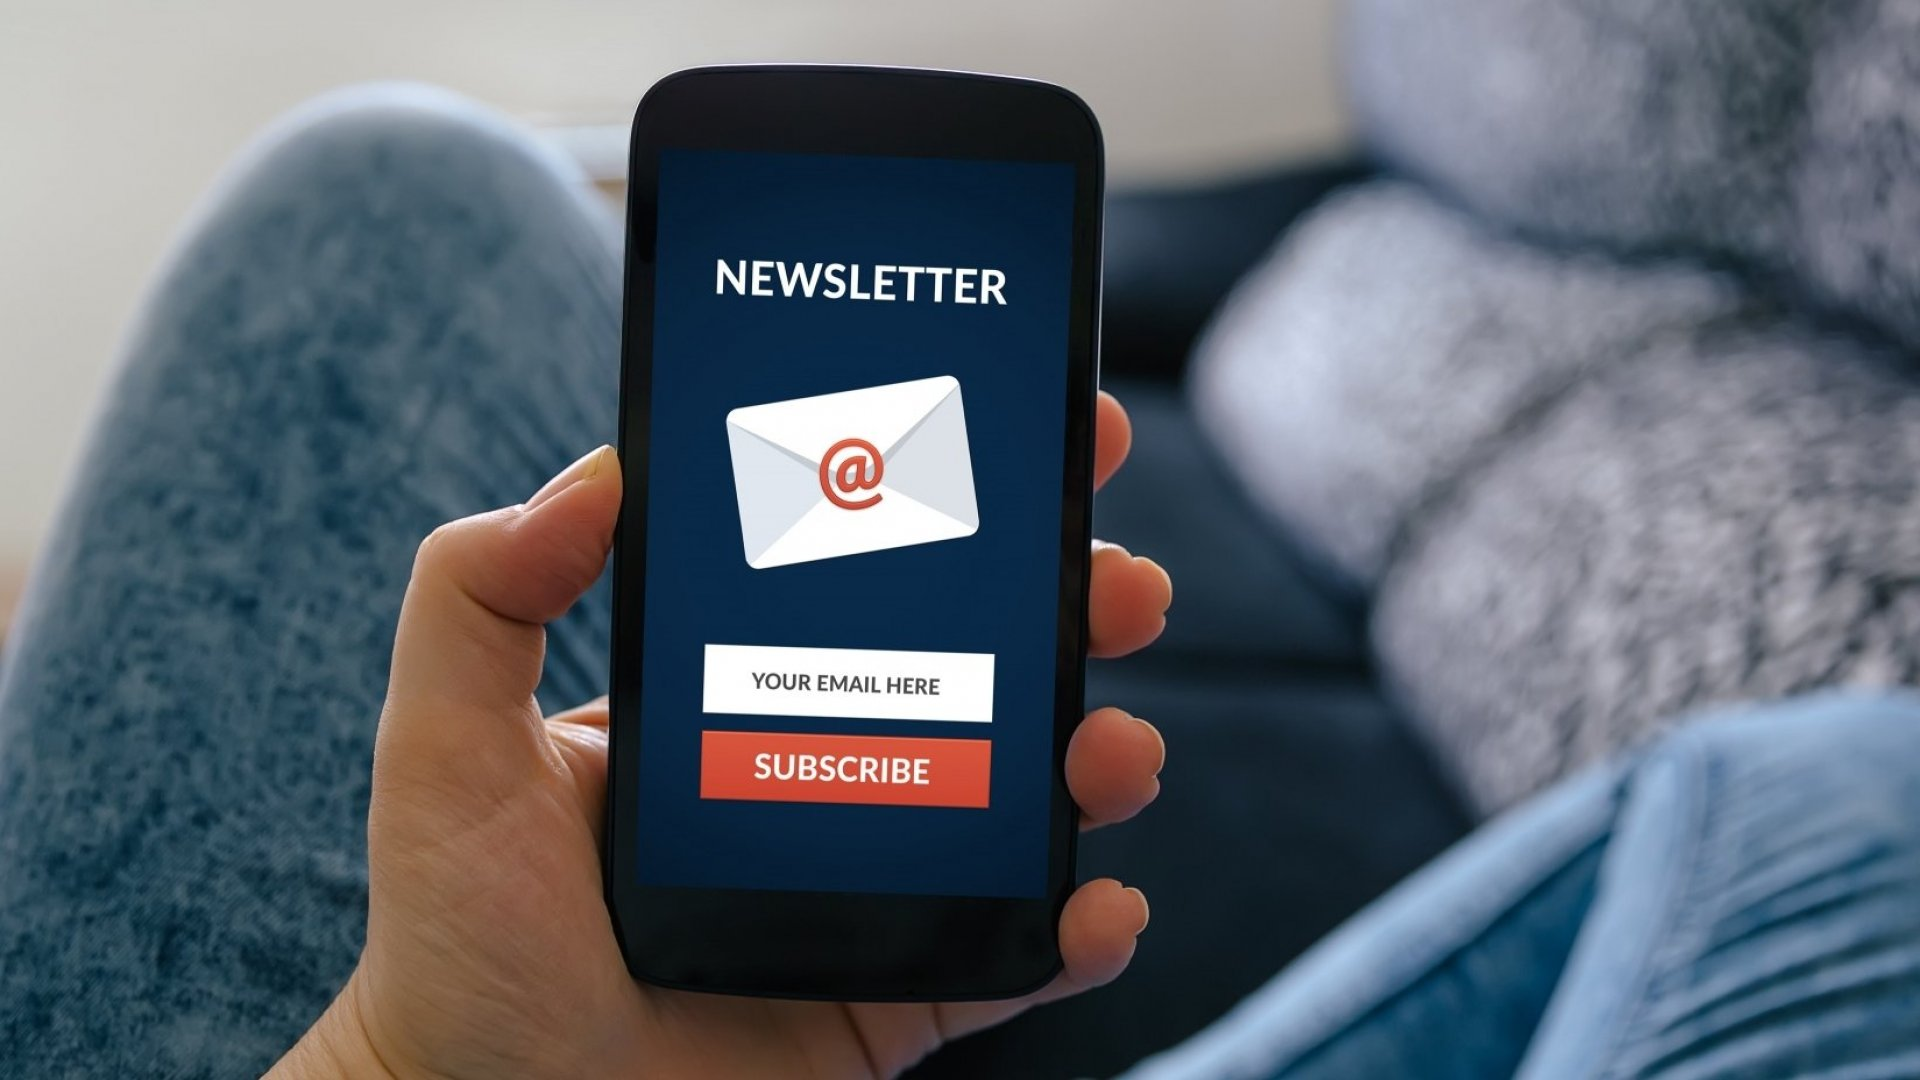 What's the one newsletter that you would never unsubscribe from?